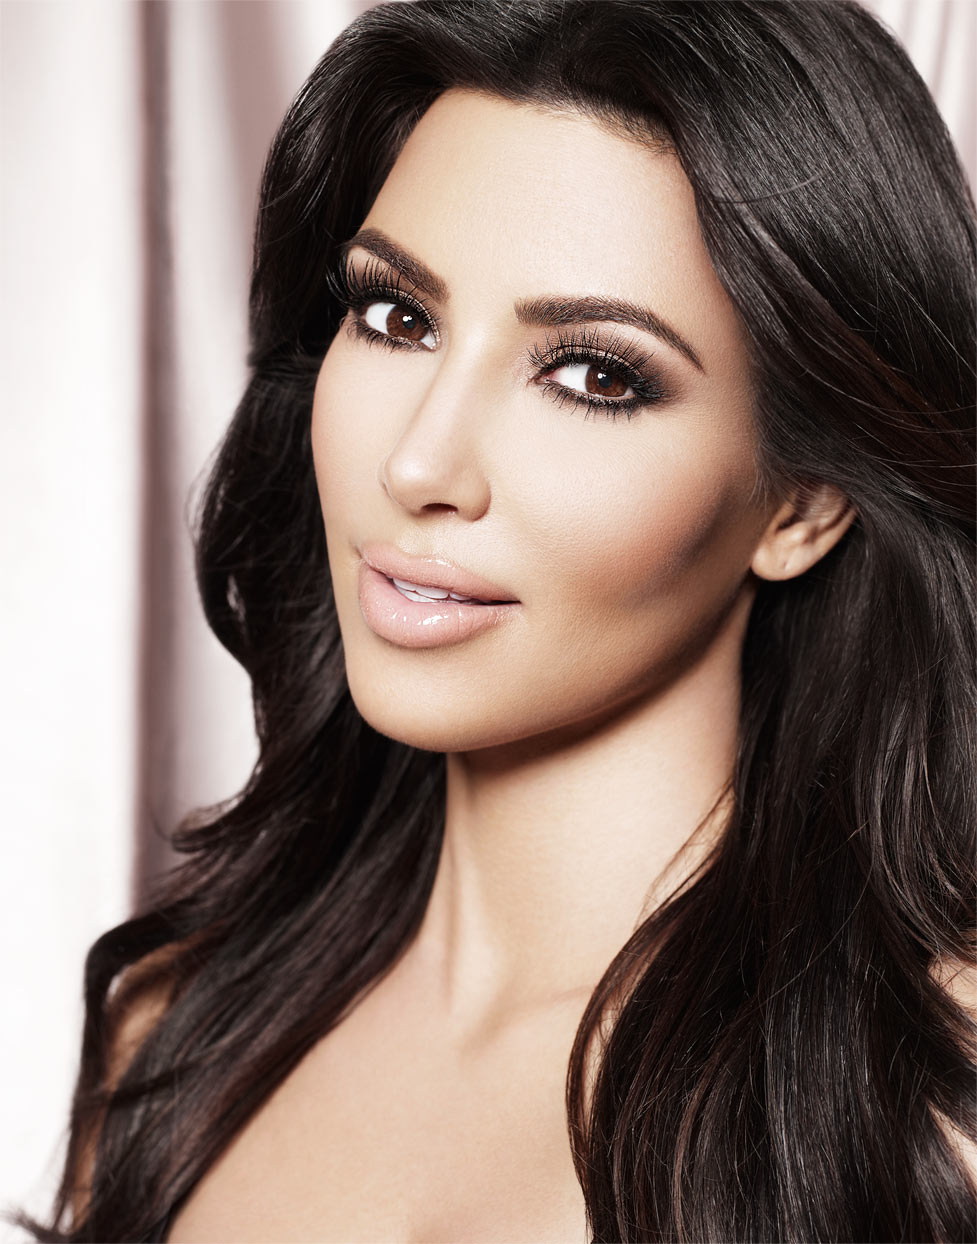 Mark DeLong - Celebrity Photographer - Profile photo of Kim Kardashian.